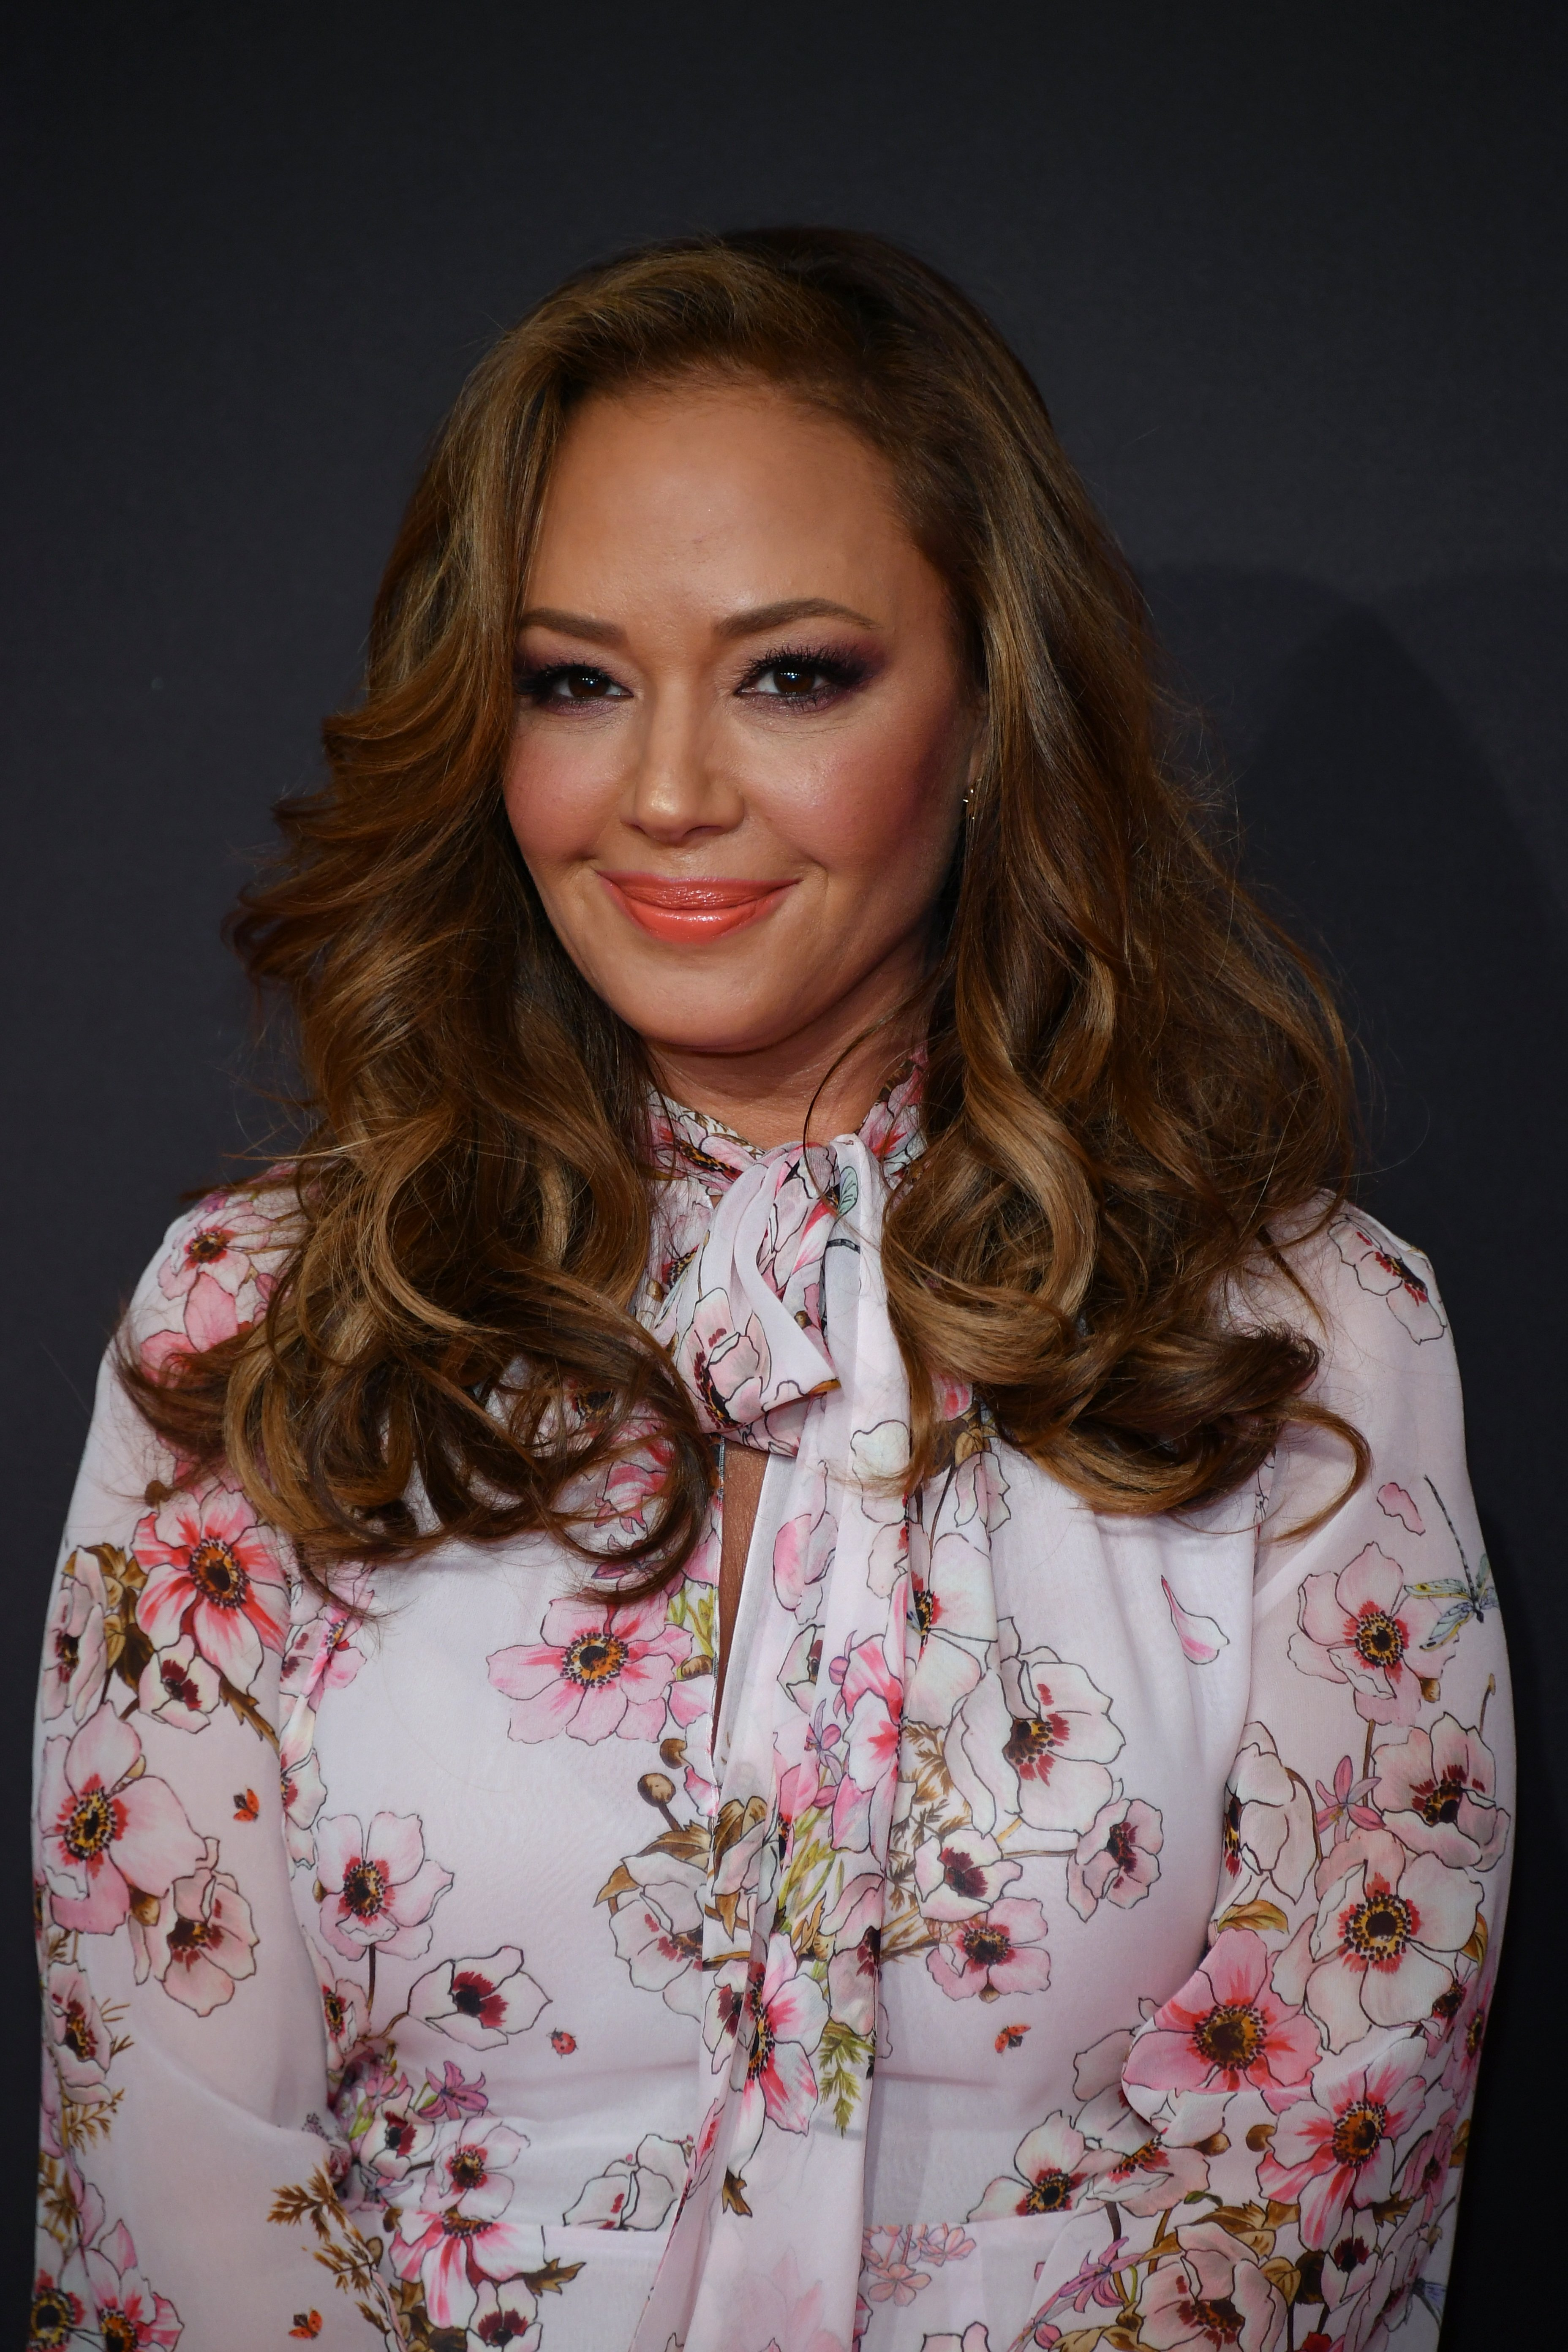 Leah Remini attends day 1 of the 2017 Creative Arts Emmy Awards at Microsoft Theater on September 9, 2017. | Photo: GettyImages